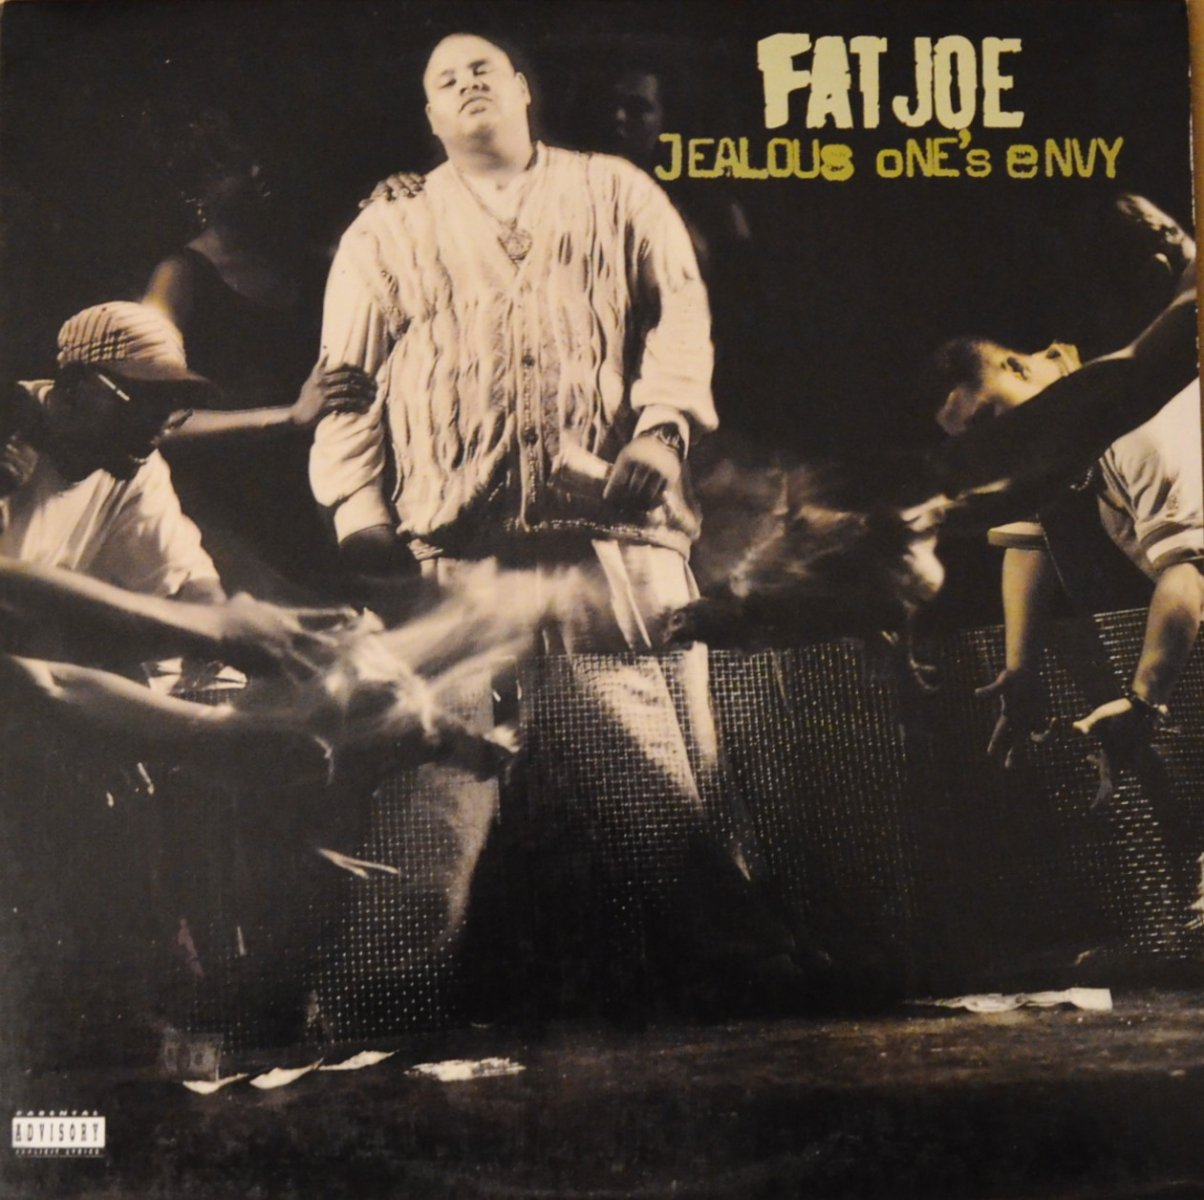 FAT JOE / JEALOUS ONE'S ENVY (LP)